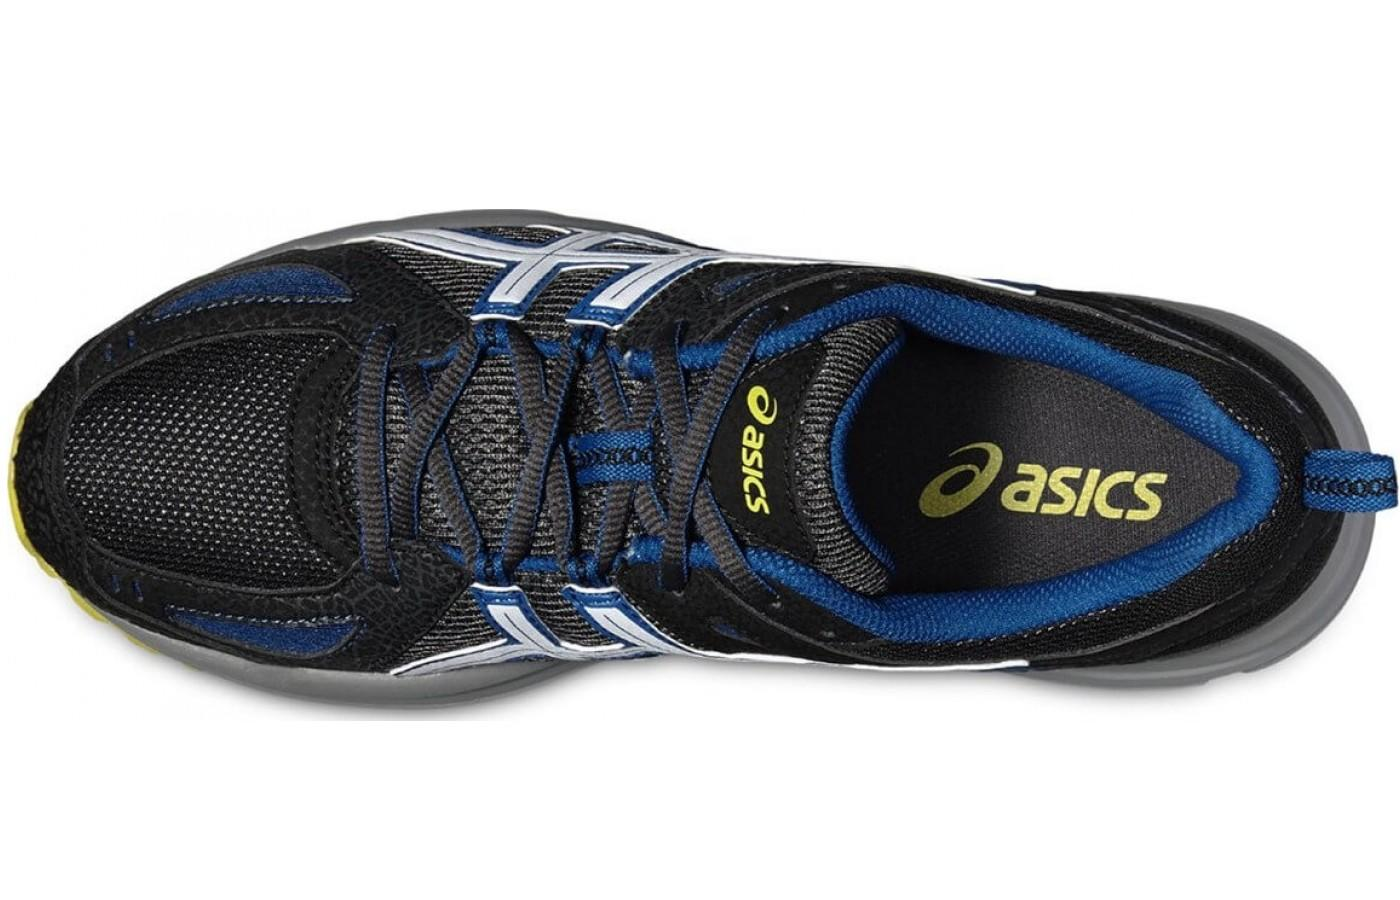 the upper of the Asics Gel Tambora 5 is made of synthetic and mesh for lightweight breathability